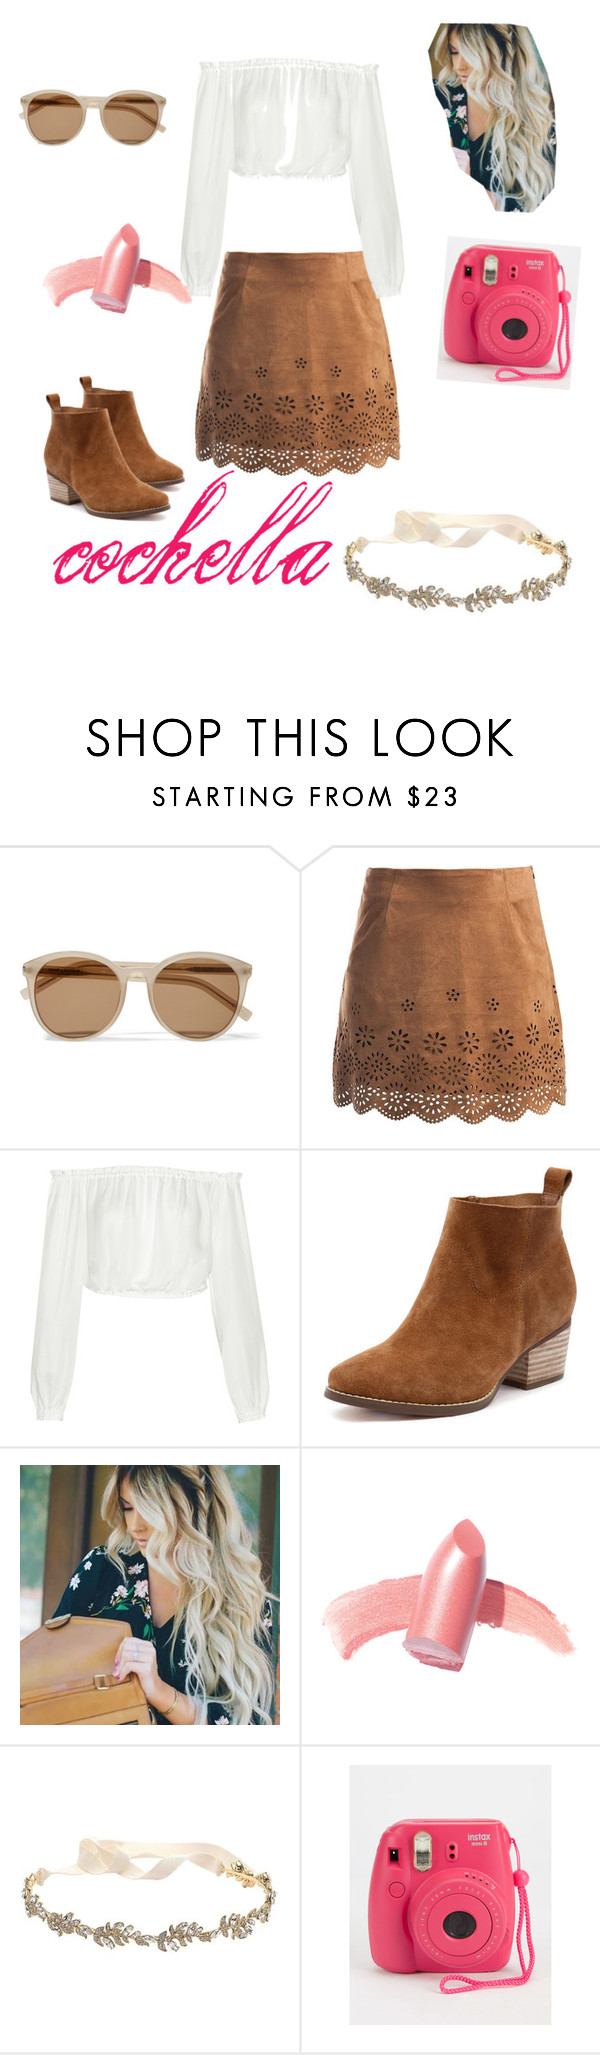 """cochella"" by cutedips ❤ liked on Polyvore featuring Yves Saint Laurent, Sans Souci, Elizabeth and James, Elizabeth Arden and Marchesa"